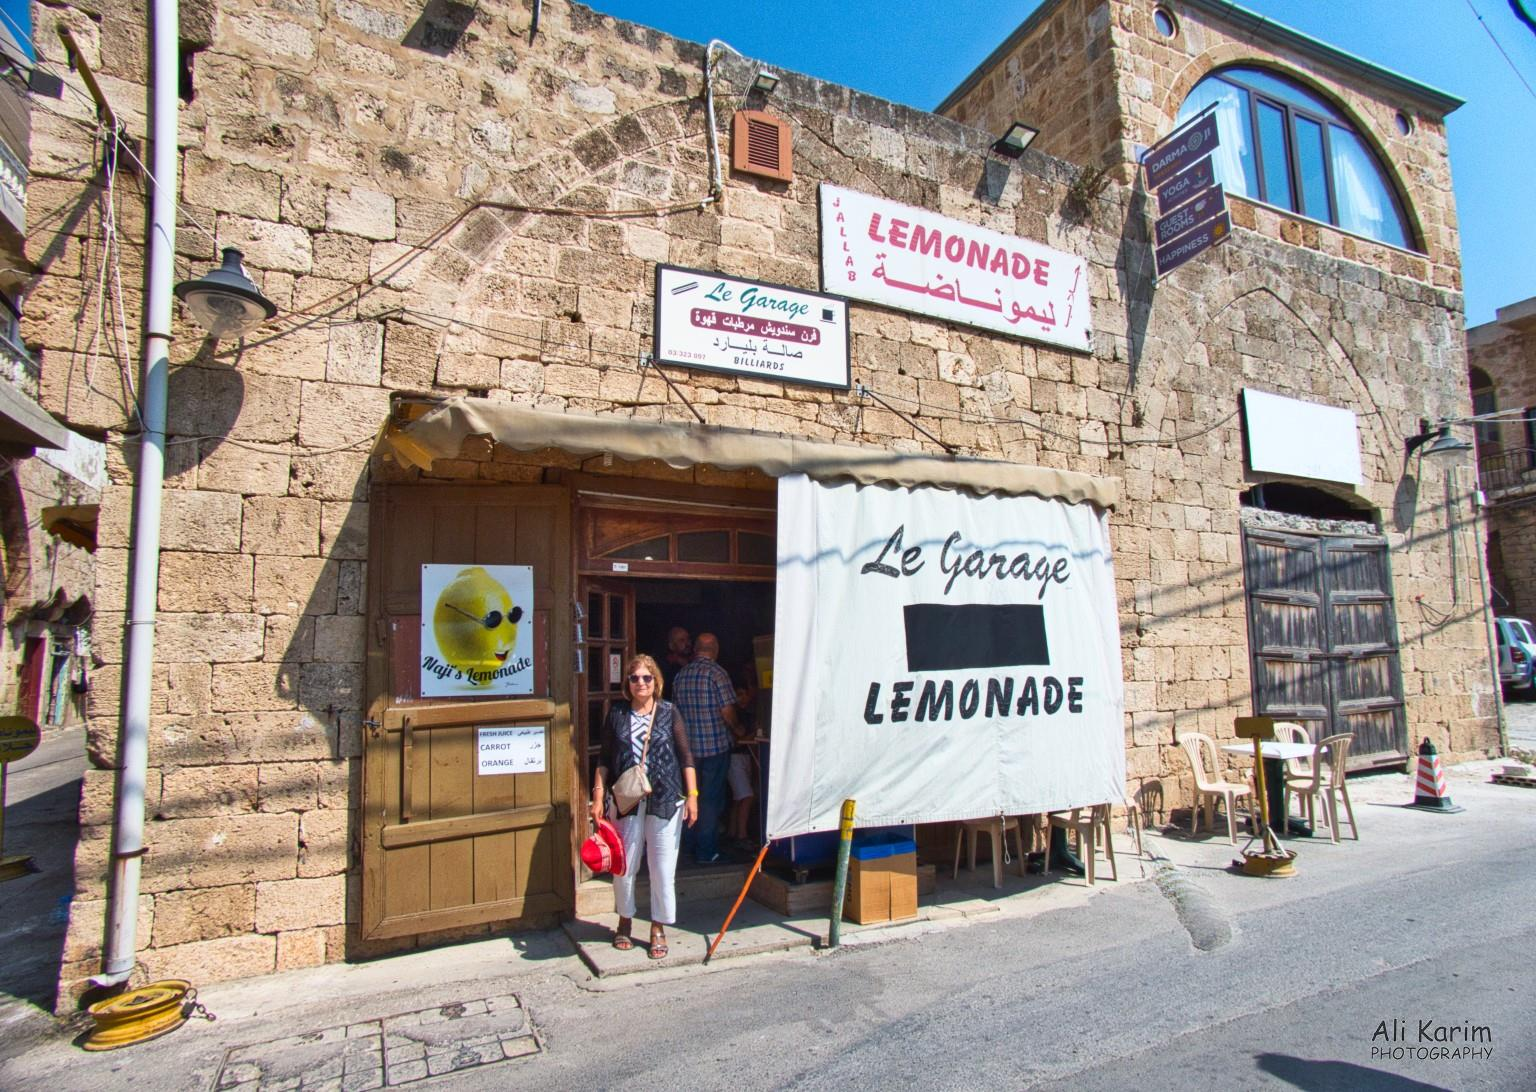 Beirut to Tripoli Lemonade stop